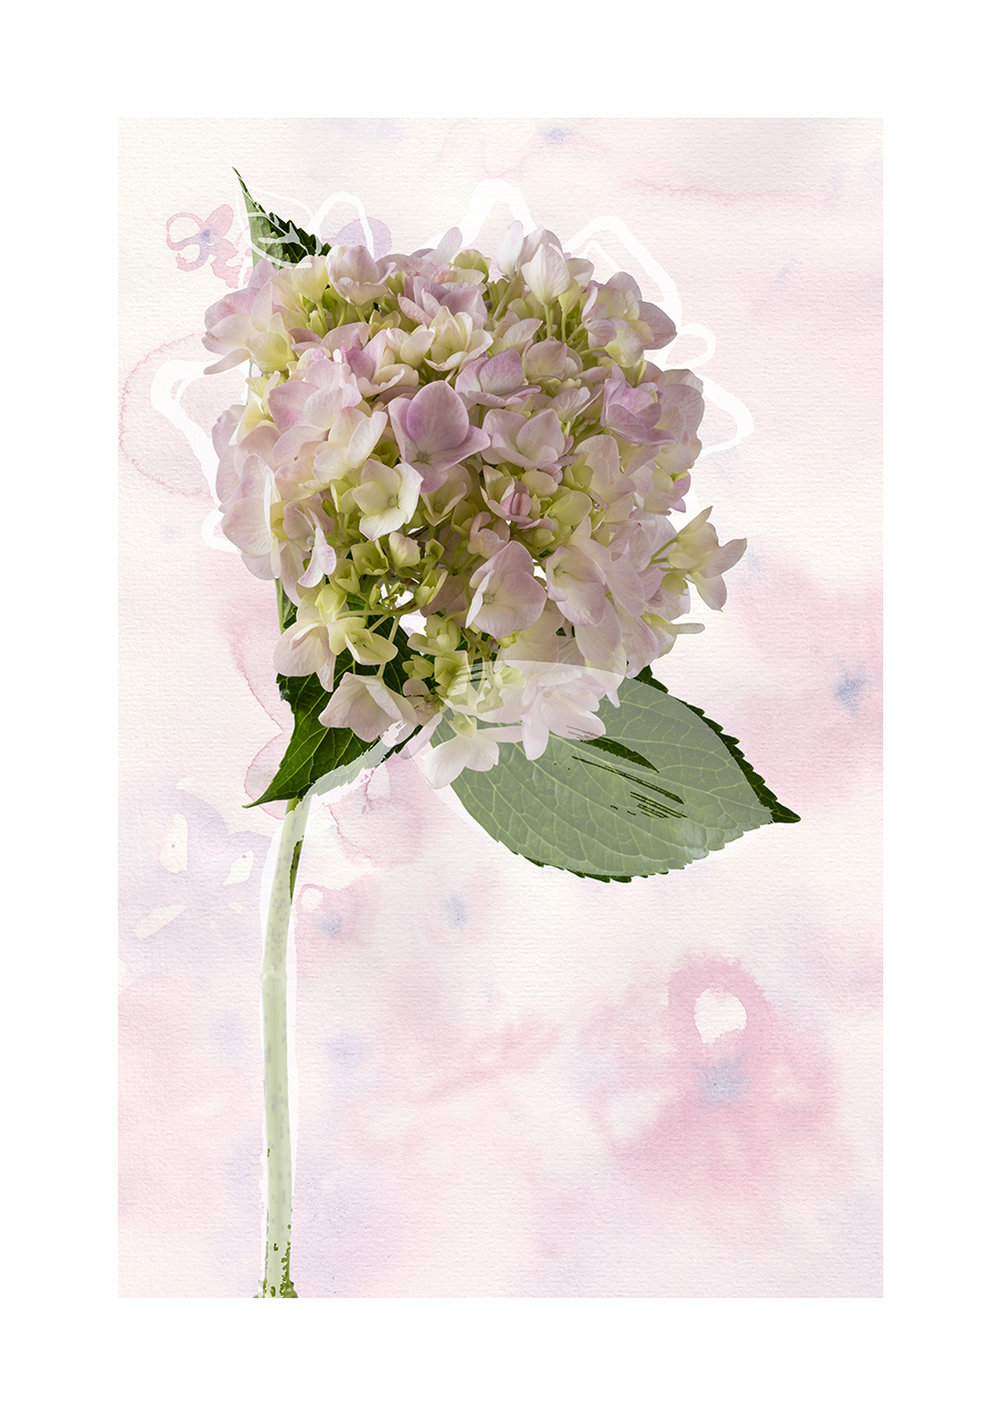 Delicate Bloom Limited Edition Print